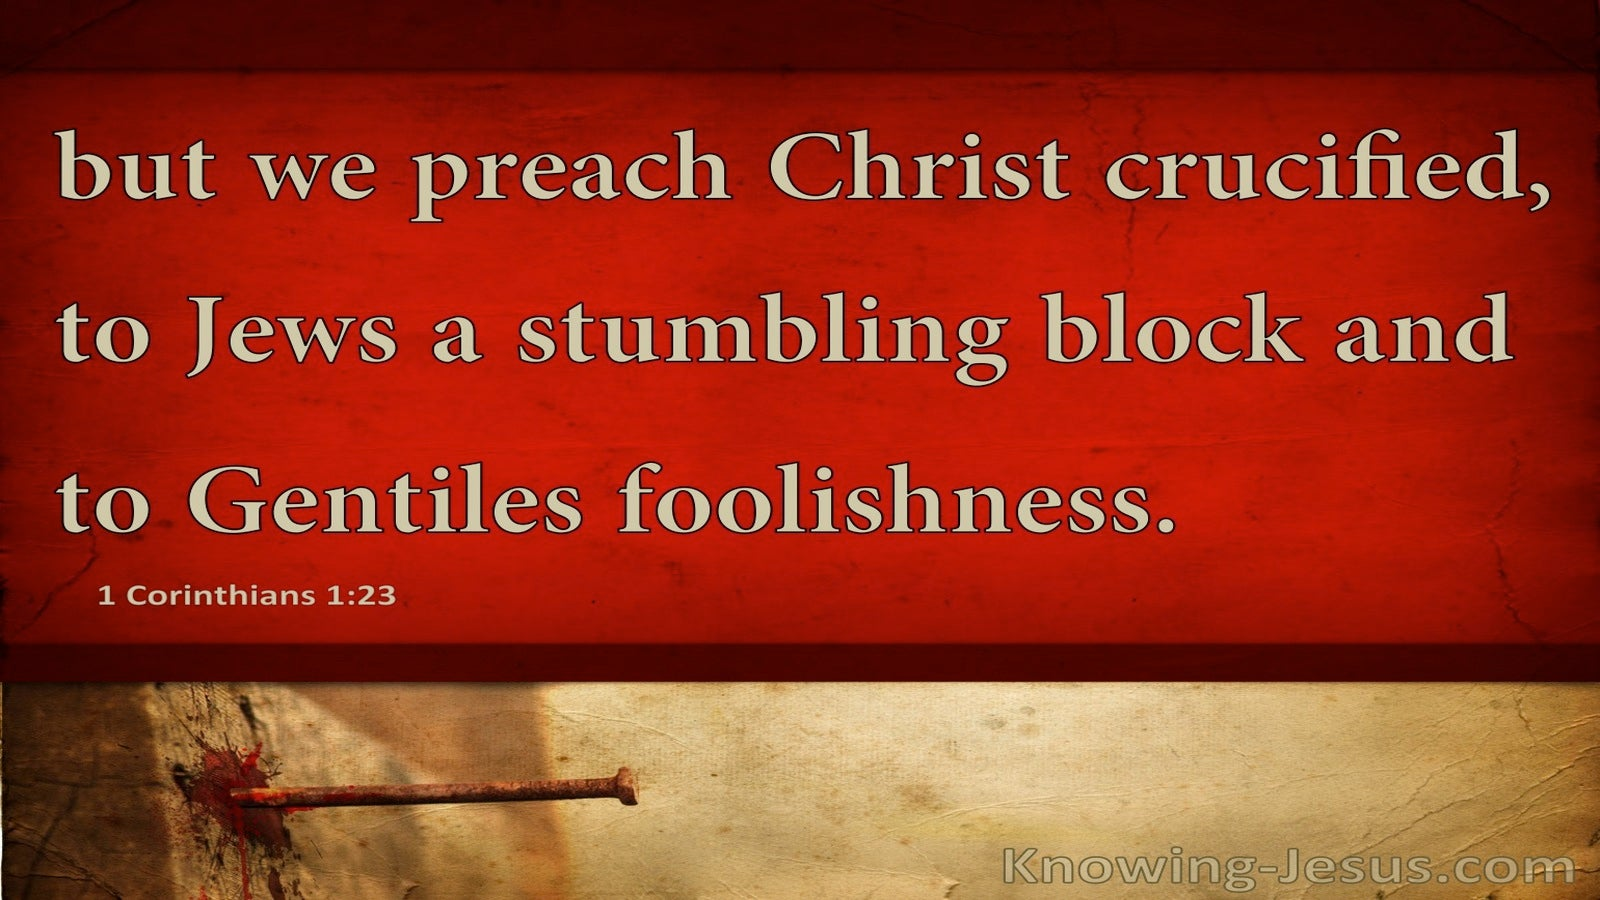 1 Corinthians 1:23 We Preach Christ Crucified (red)